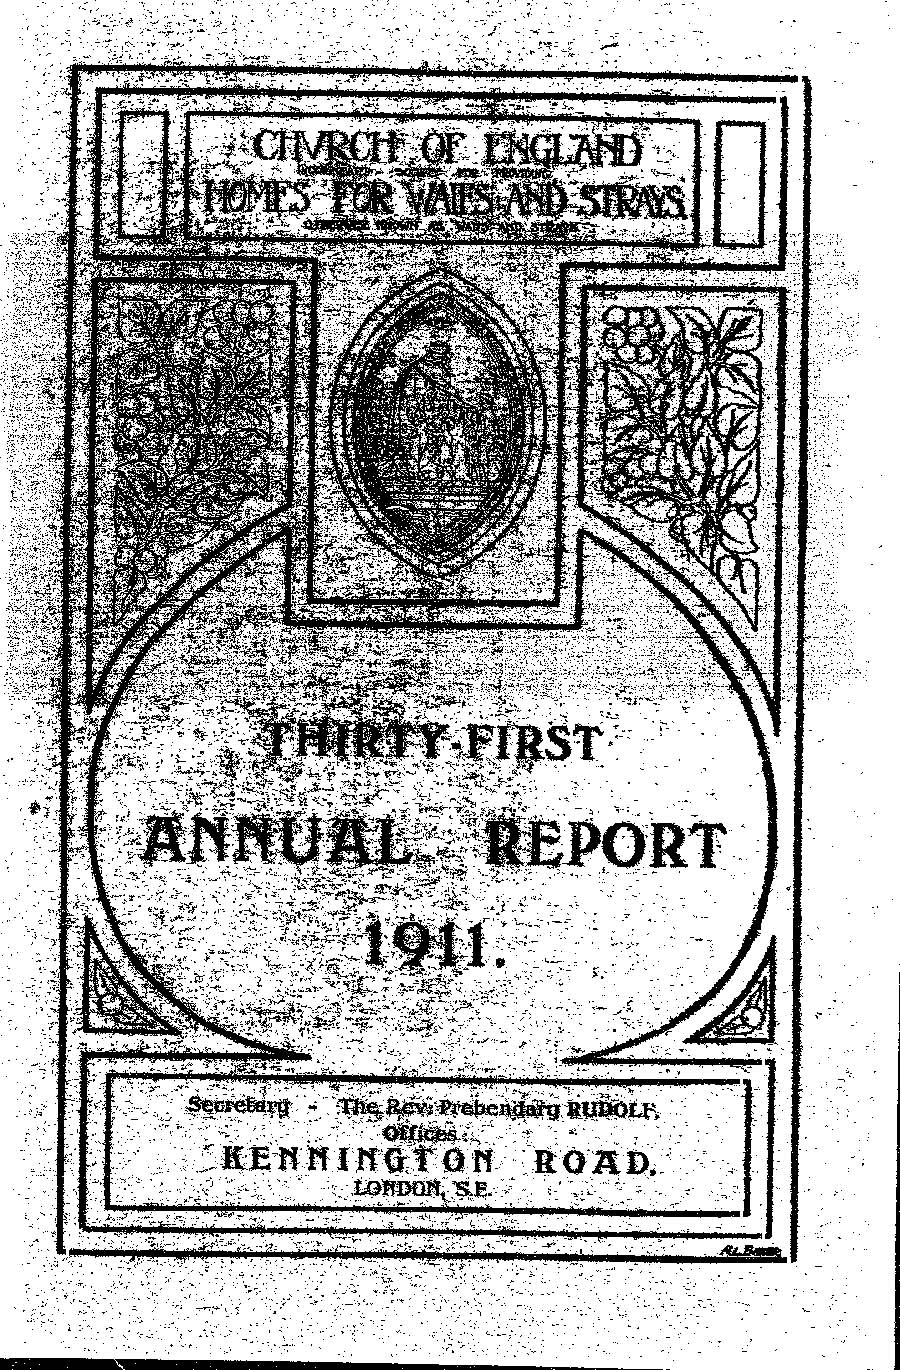 Annual Report 1911 - page 1